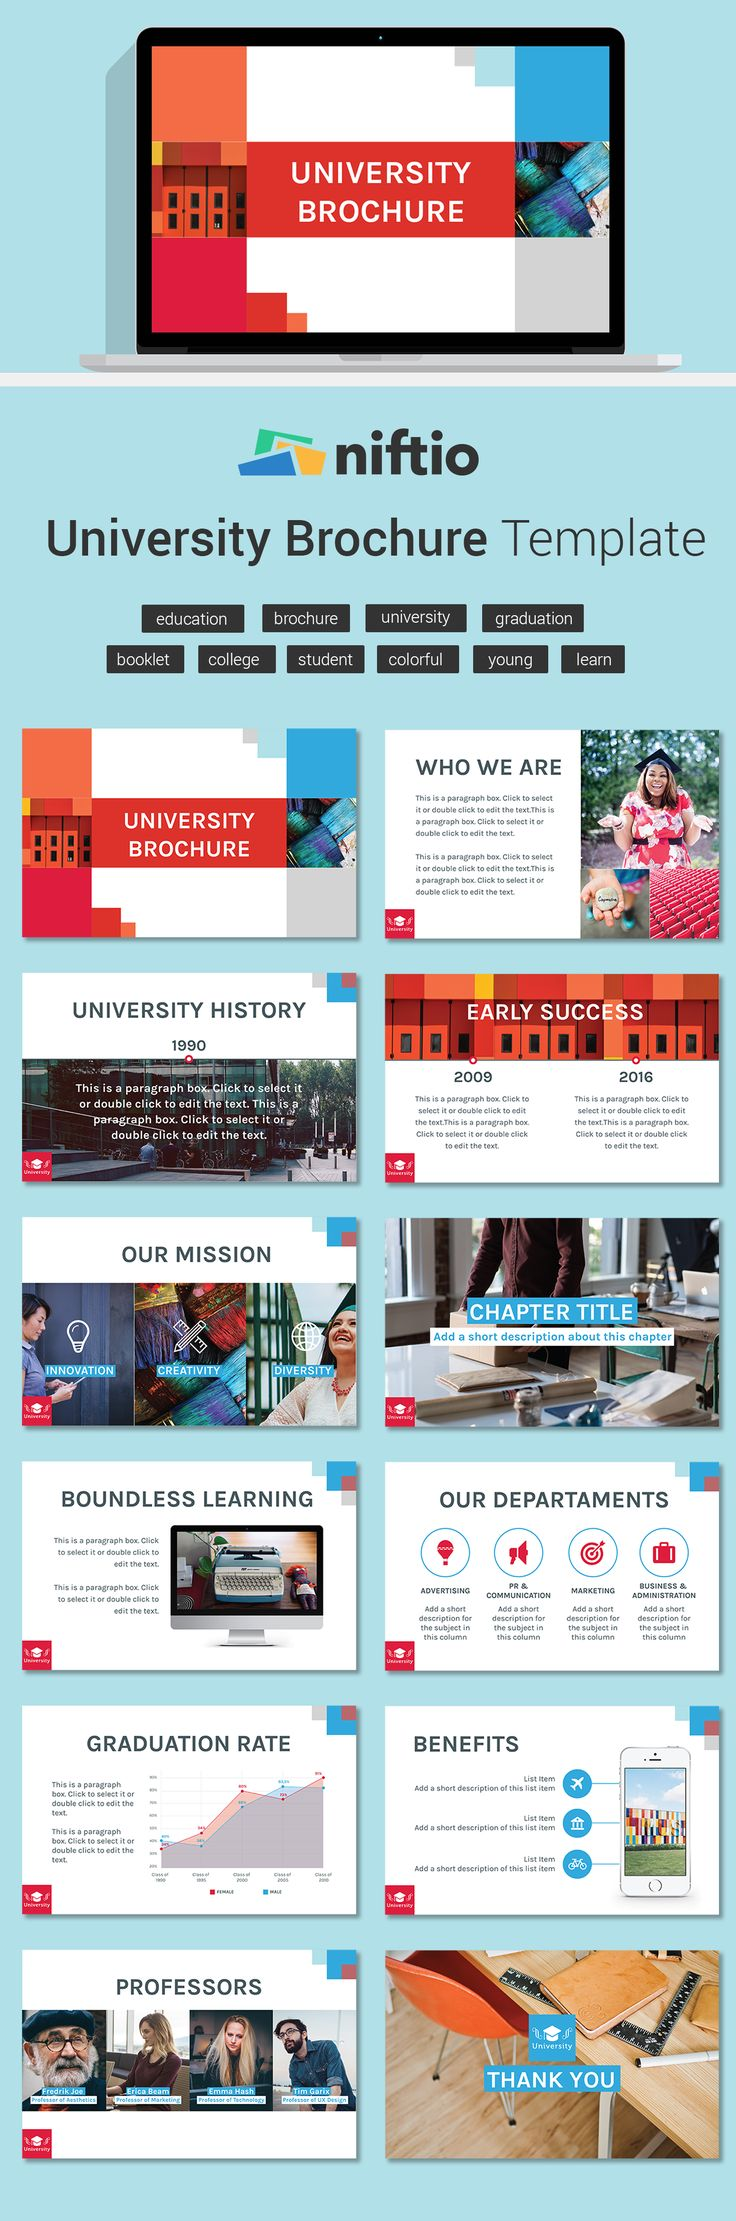 Create a brochure for your university using this new presentation template made for Edu.